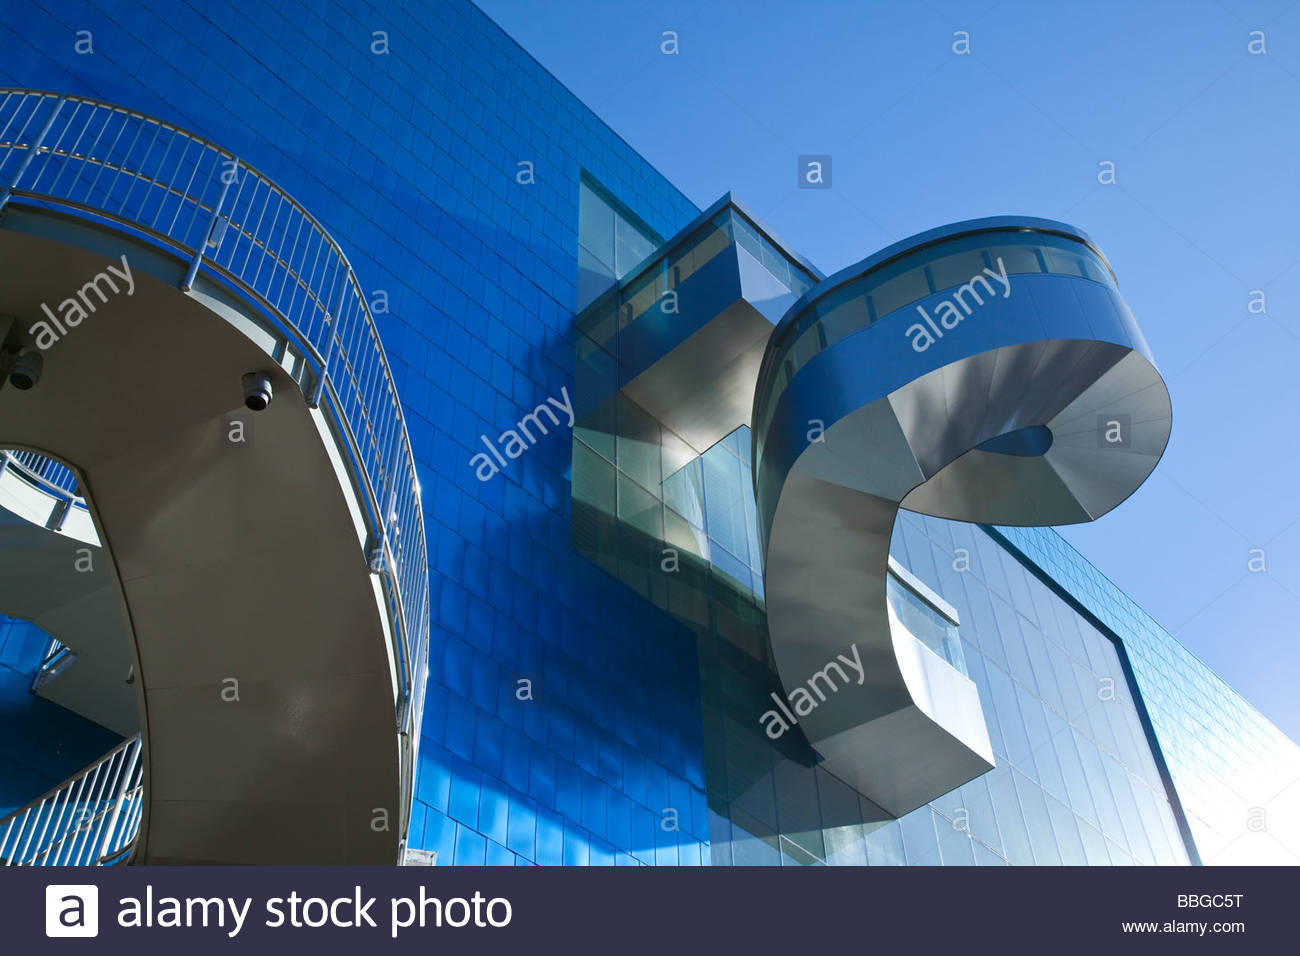 Exterior staircase on Grange Park side of Frank Gehry addition to the Art Gallery of Ontario in Toronto Ontario - Stock Image